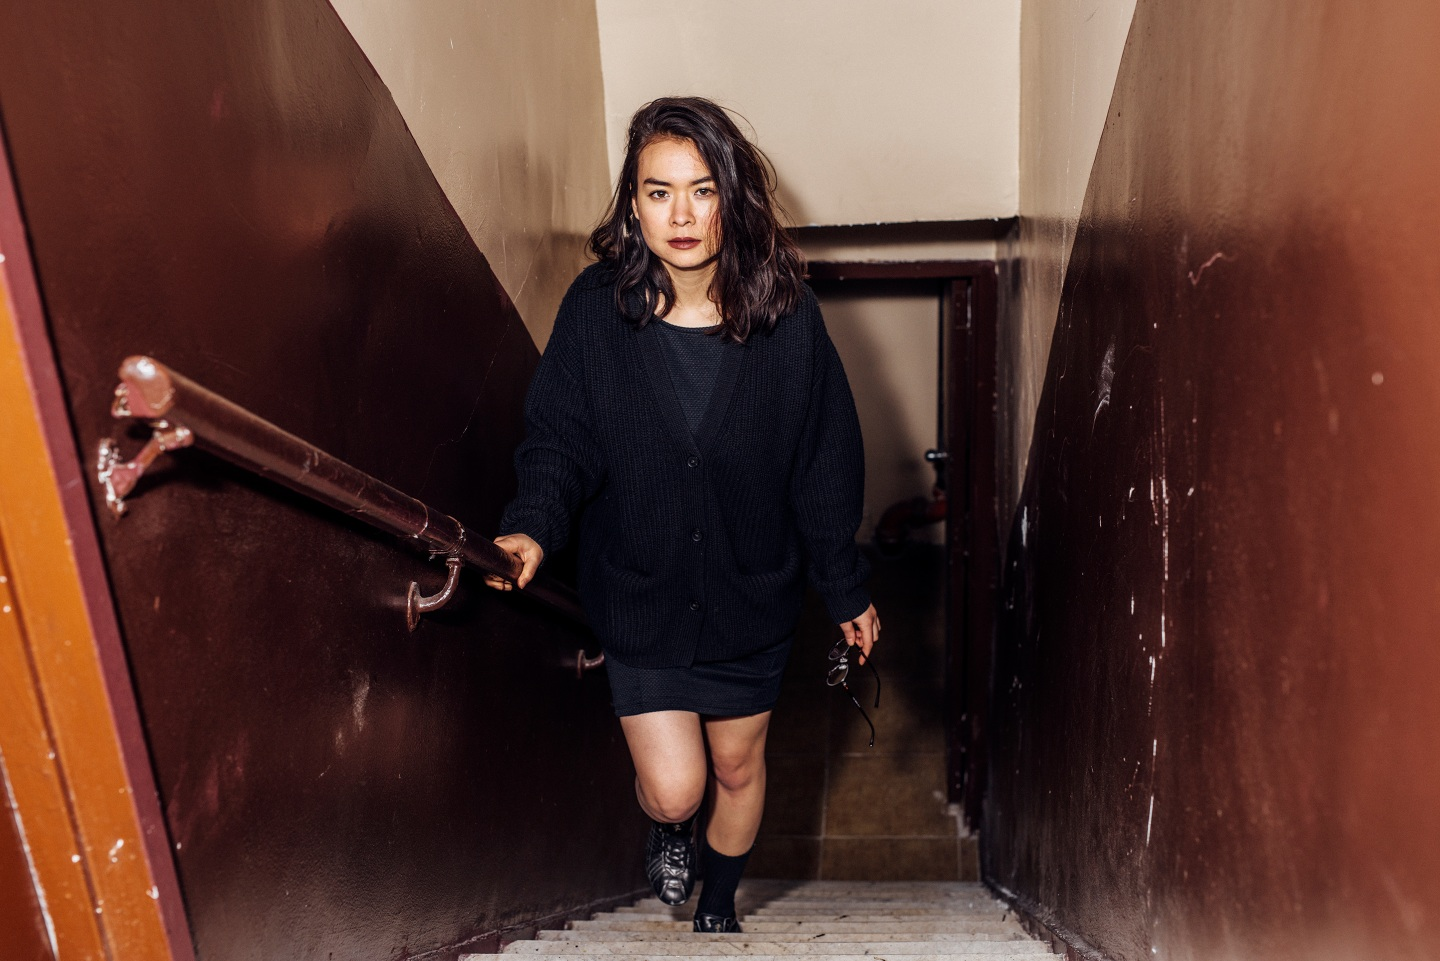 Meet Mitski, An Electric Folk Singer Making Sad Songs For Grown-Ups